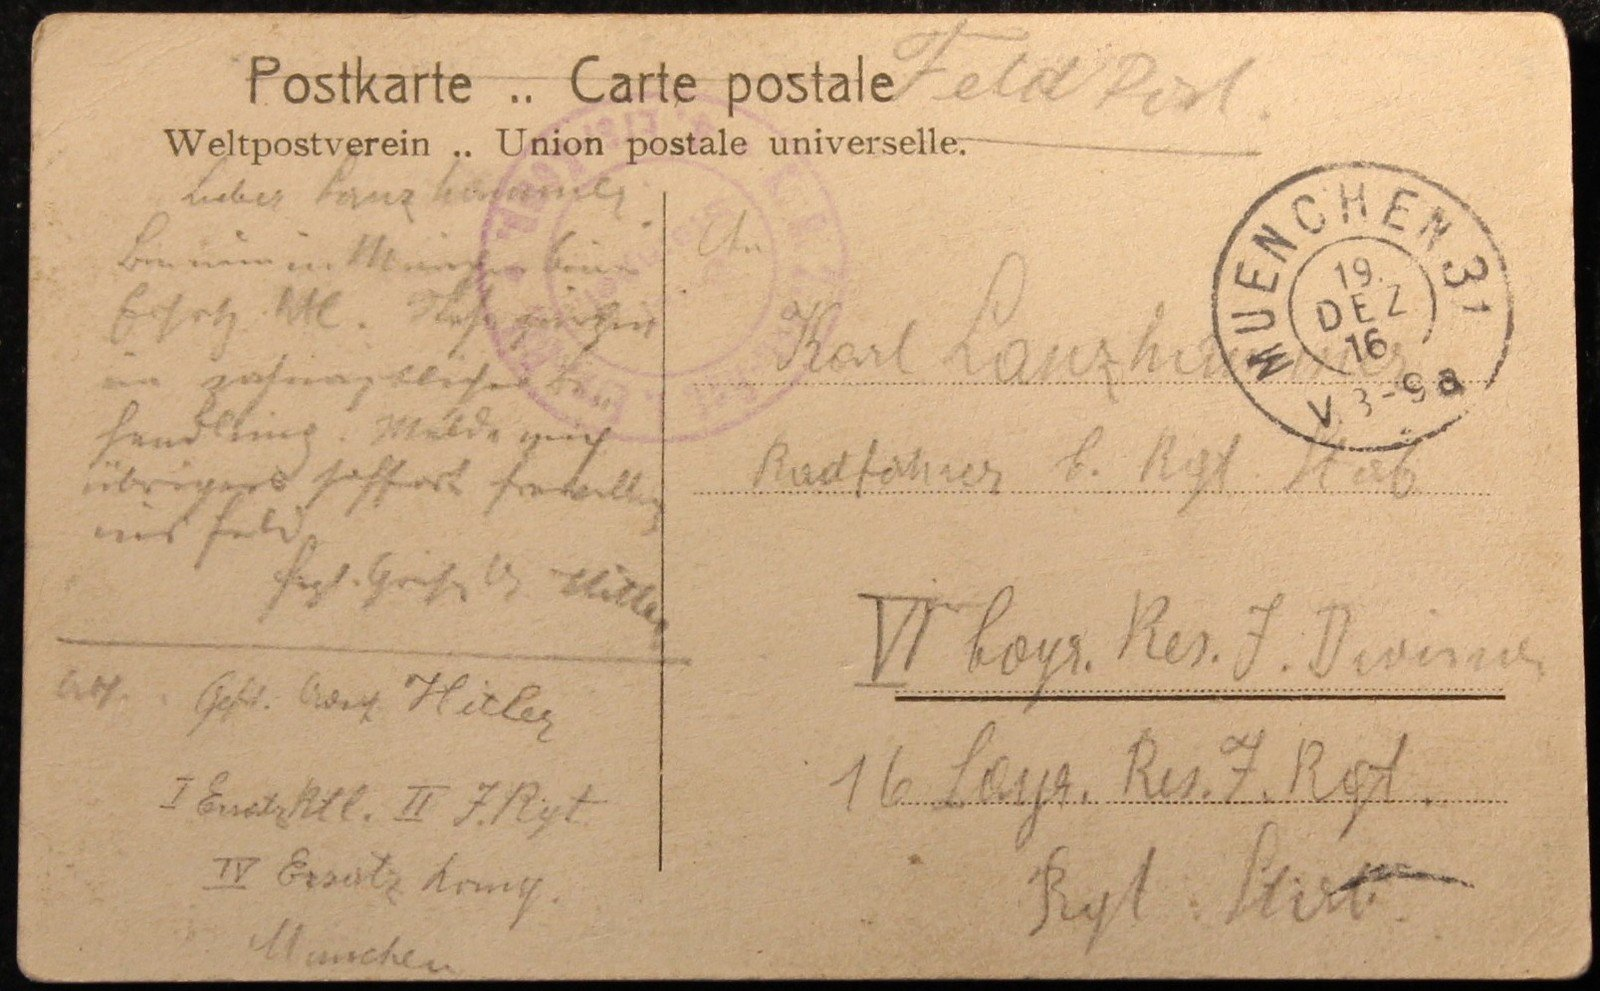 Postcard from Adolf Hitler sent to Karl Lanzhammer (reverse), 19 December 1916, Europeana 1914-1918, CC BY-SA